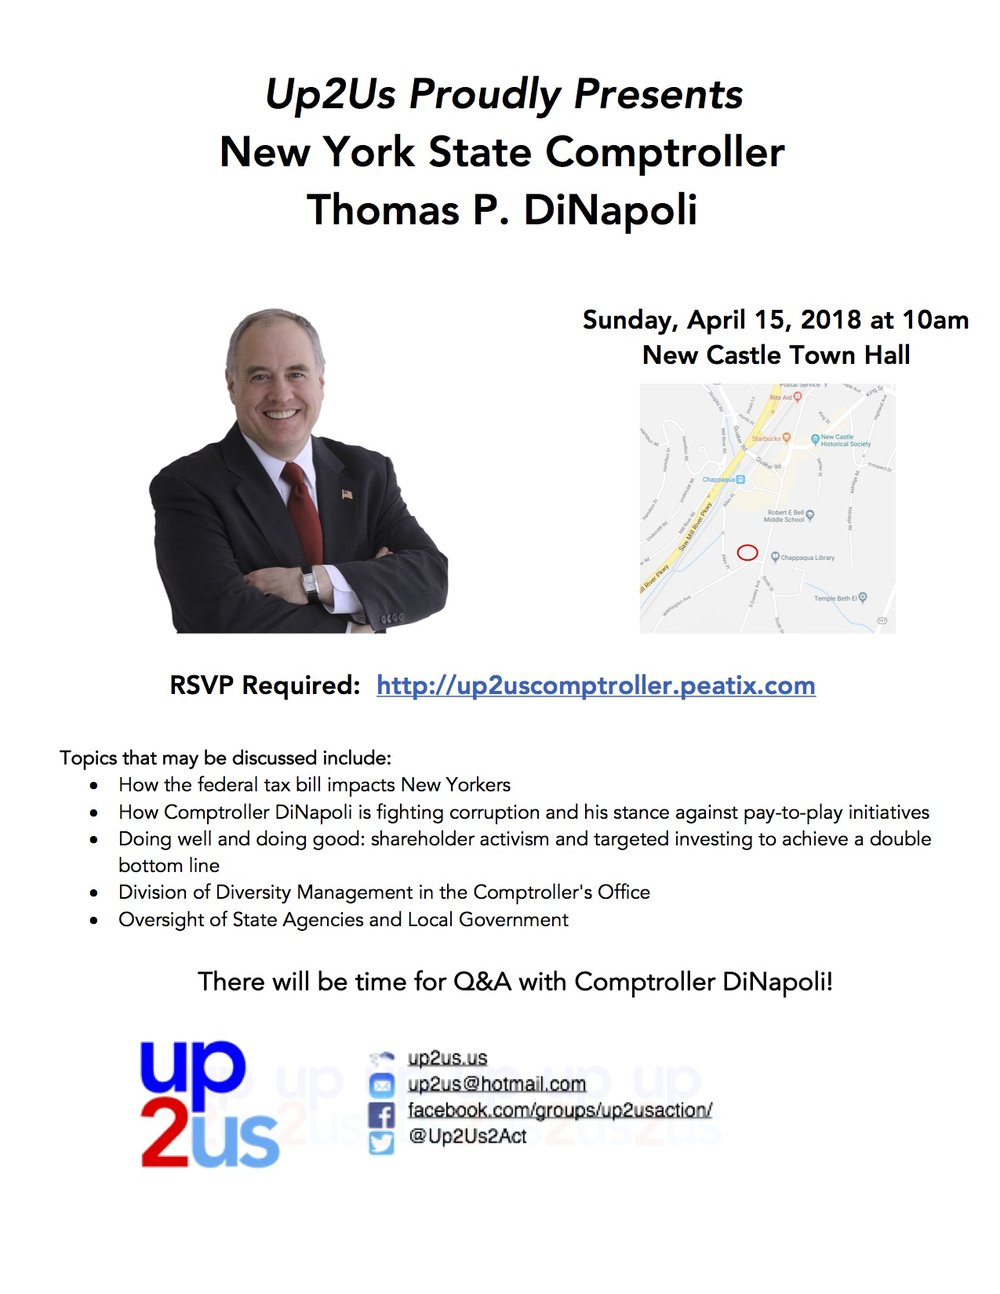 RSVP Required:  http://up2uscomptroller.peatix.com/